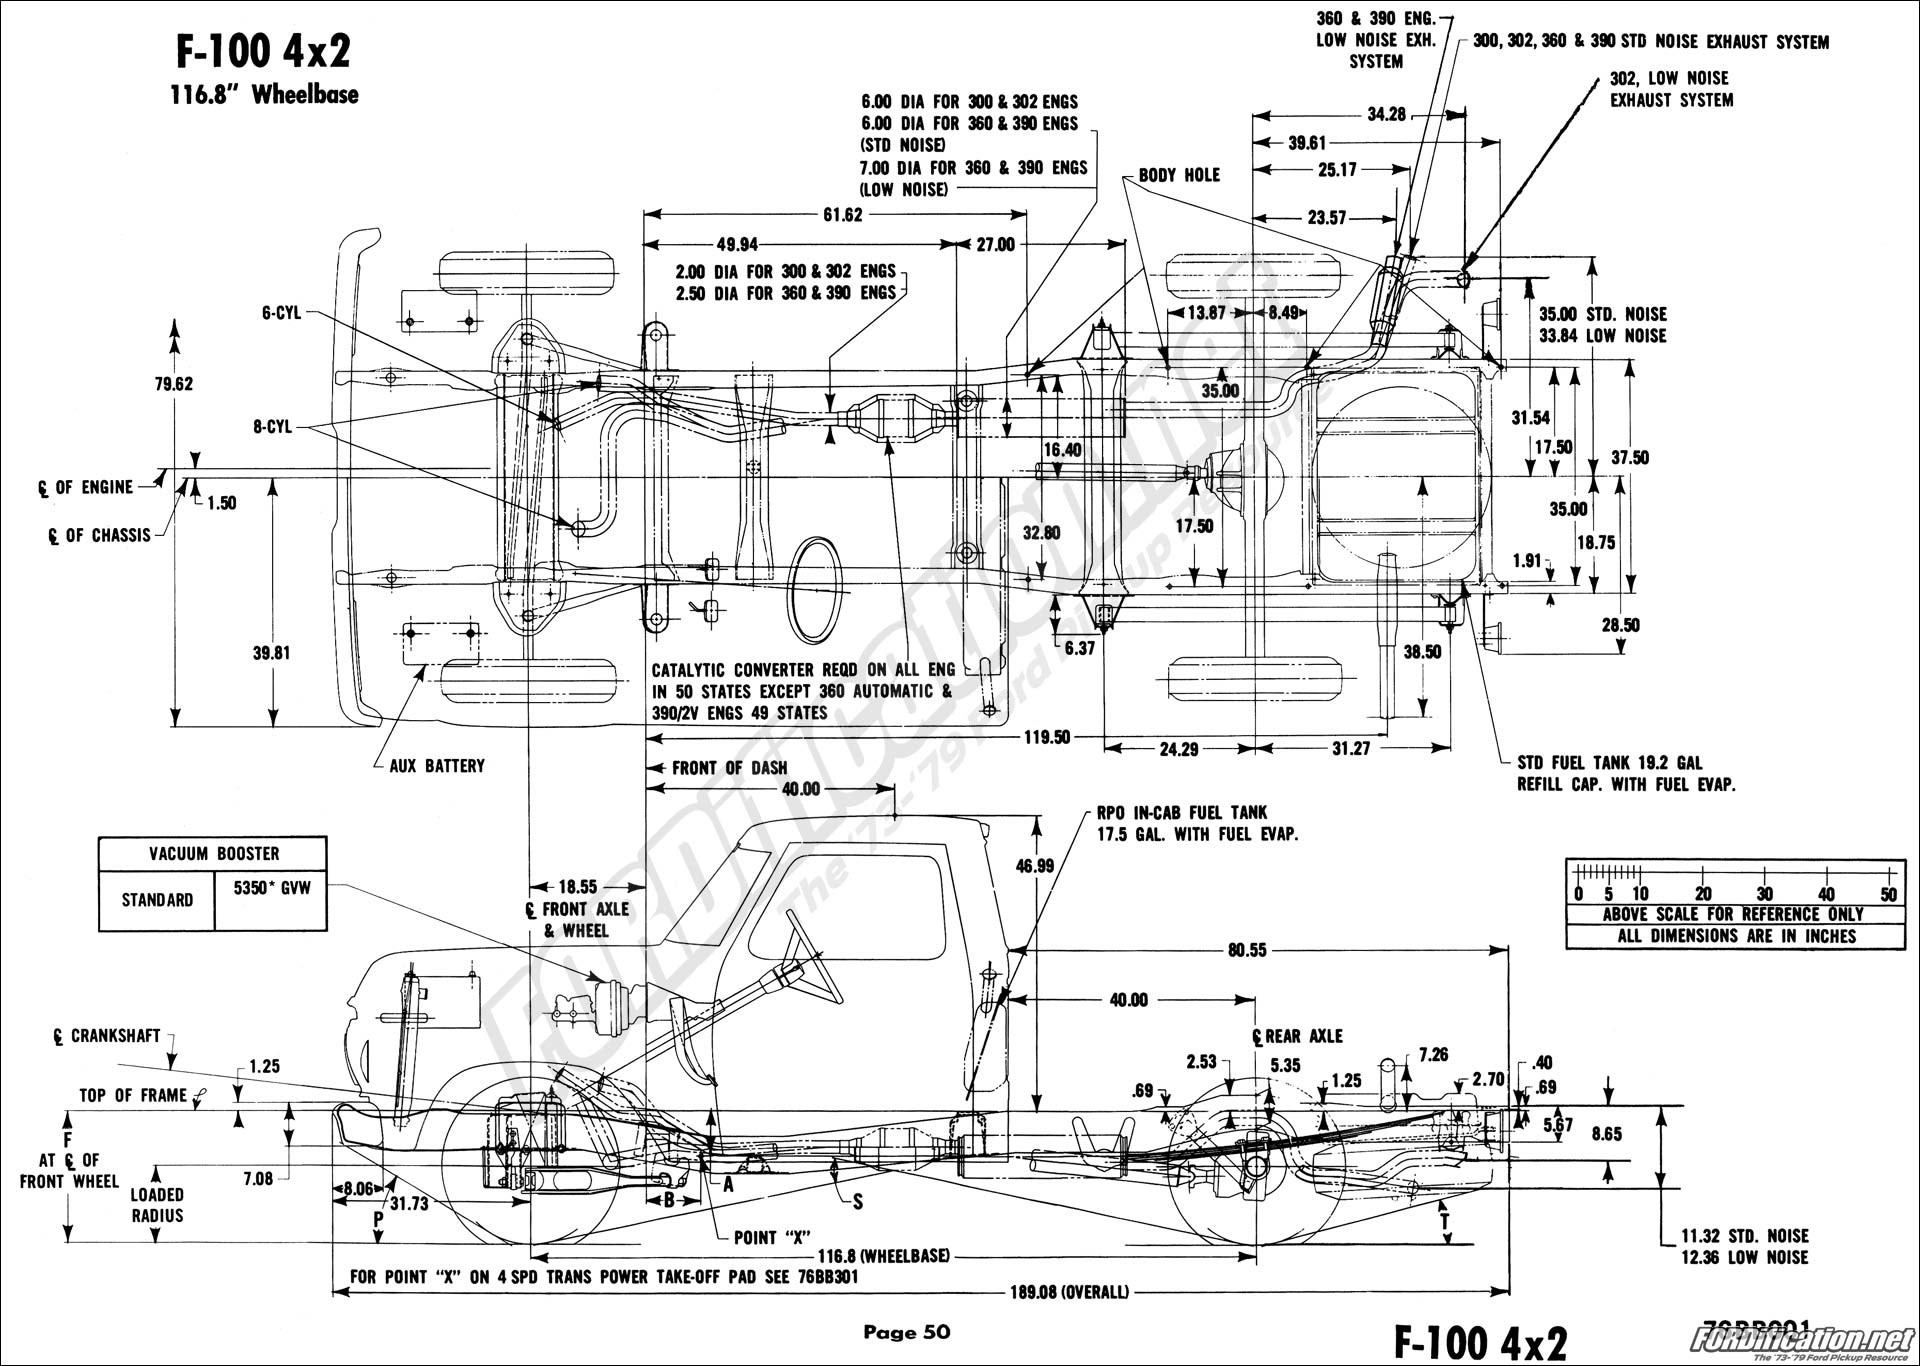 1154124 Frame Diagram Measurements on 1960 Ford F100 Wiring Diagram